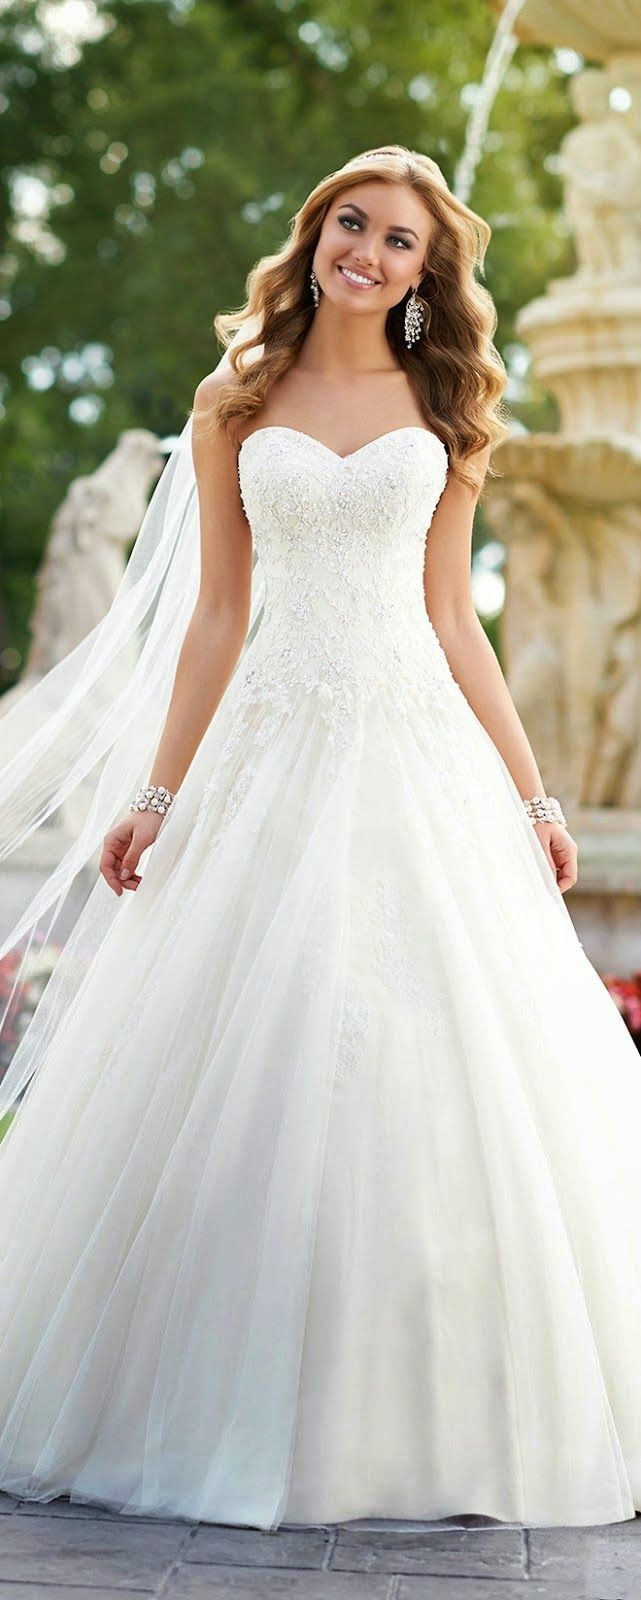 Best Wedding Dresses of 2014 | Pinterest | Bridal collection, Fall ...